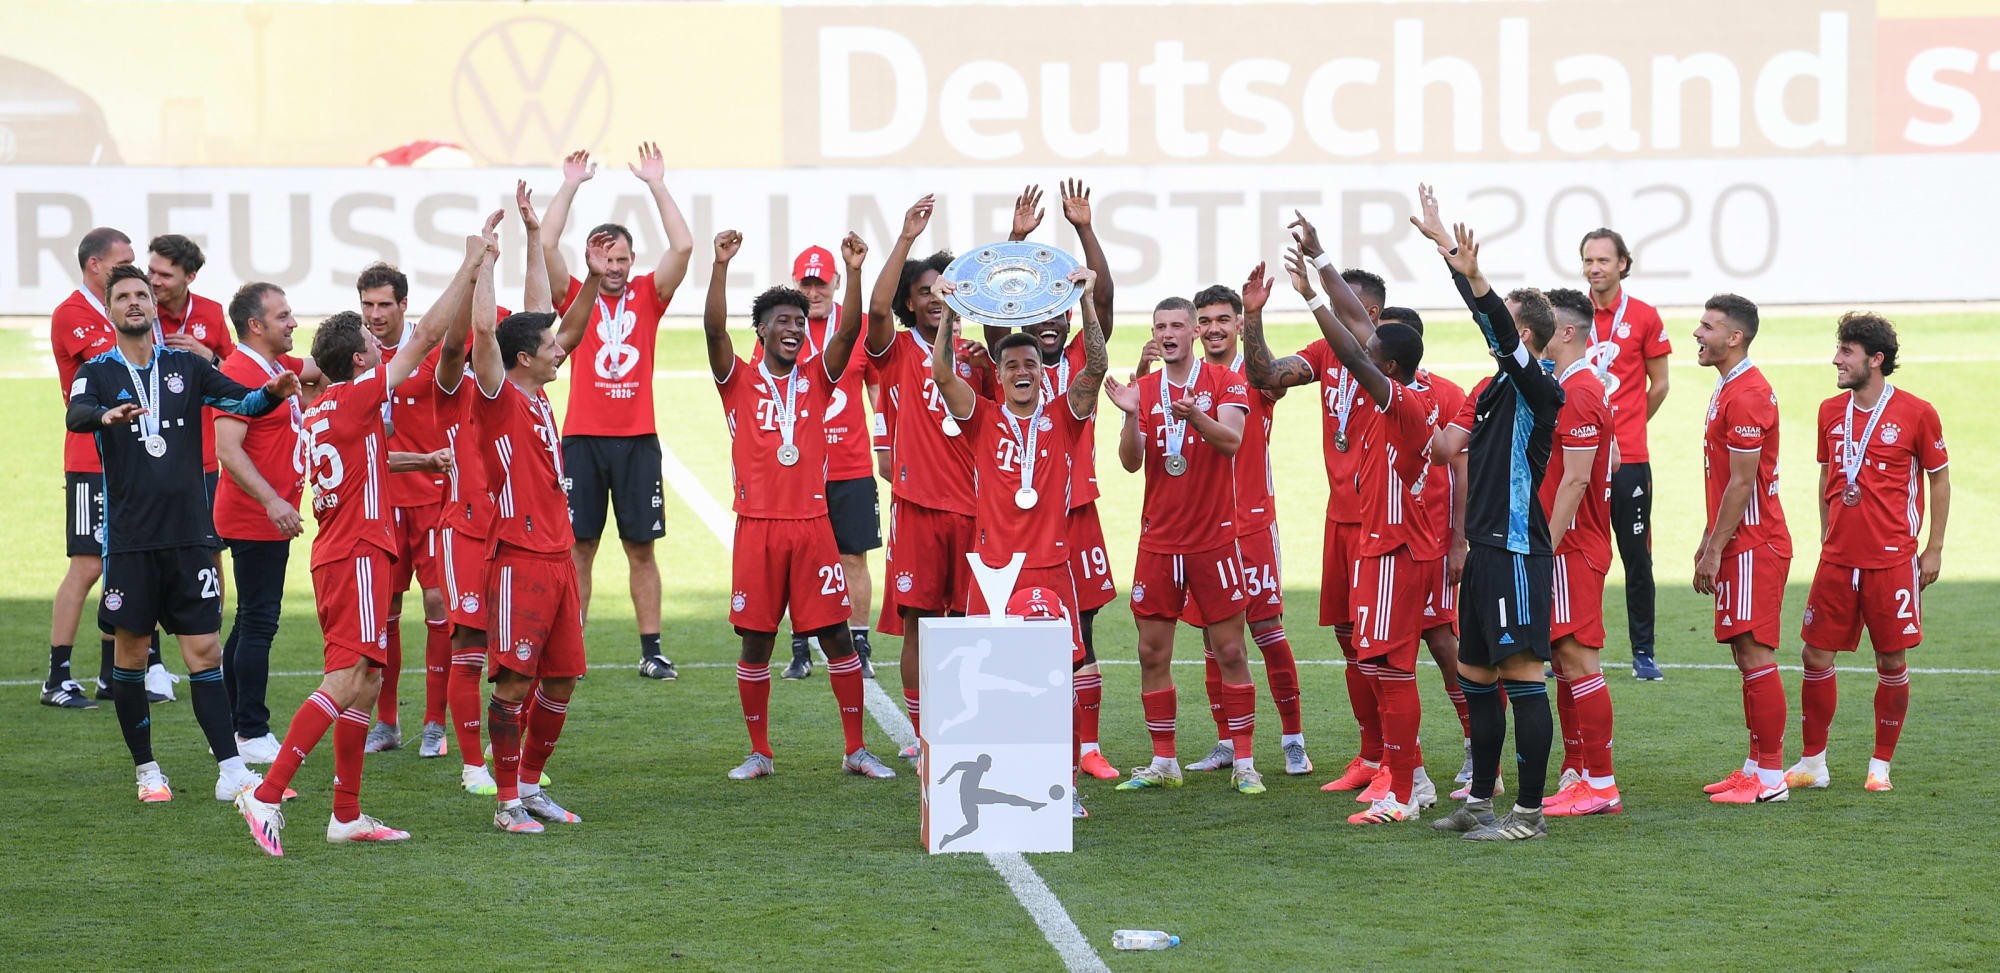 Bayern Munich is set to dominate Germany for years